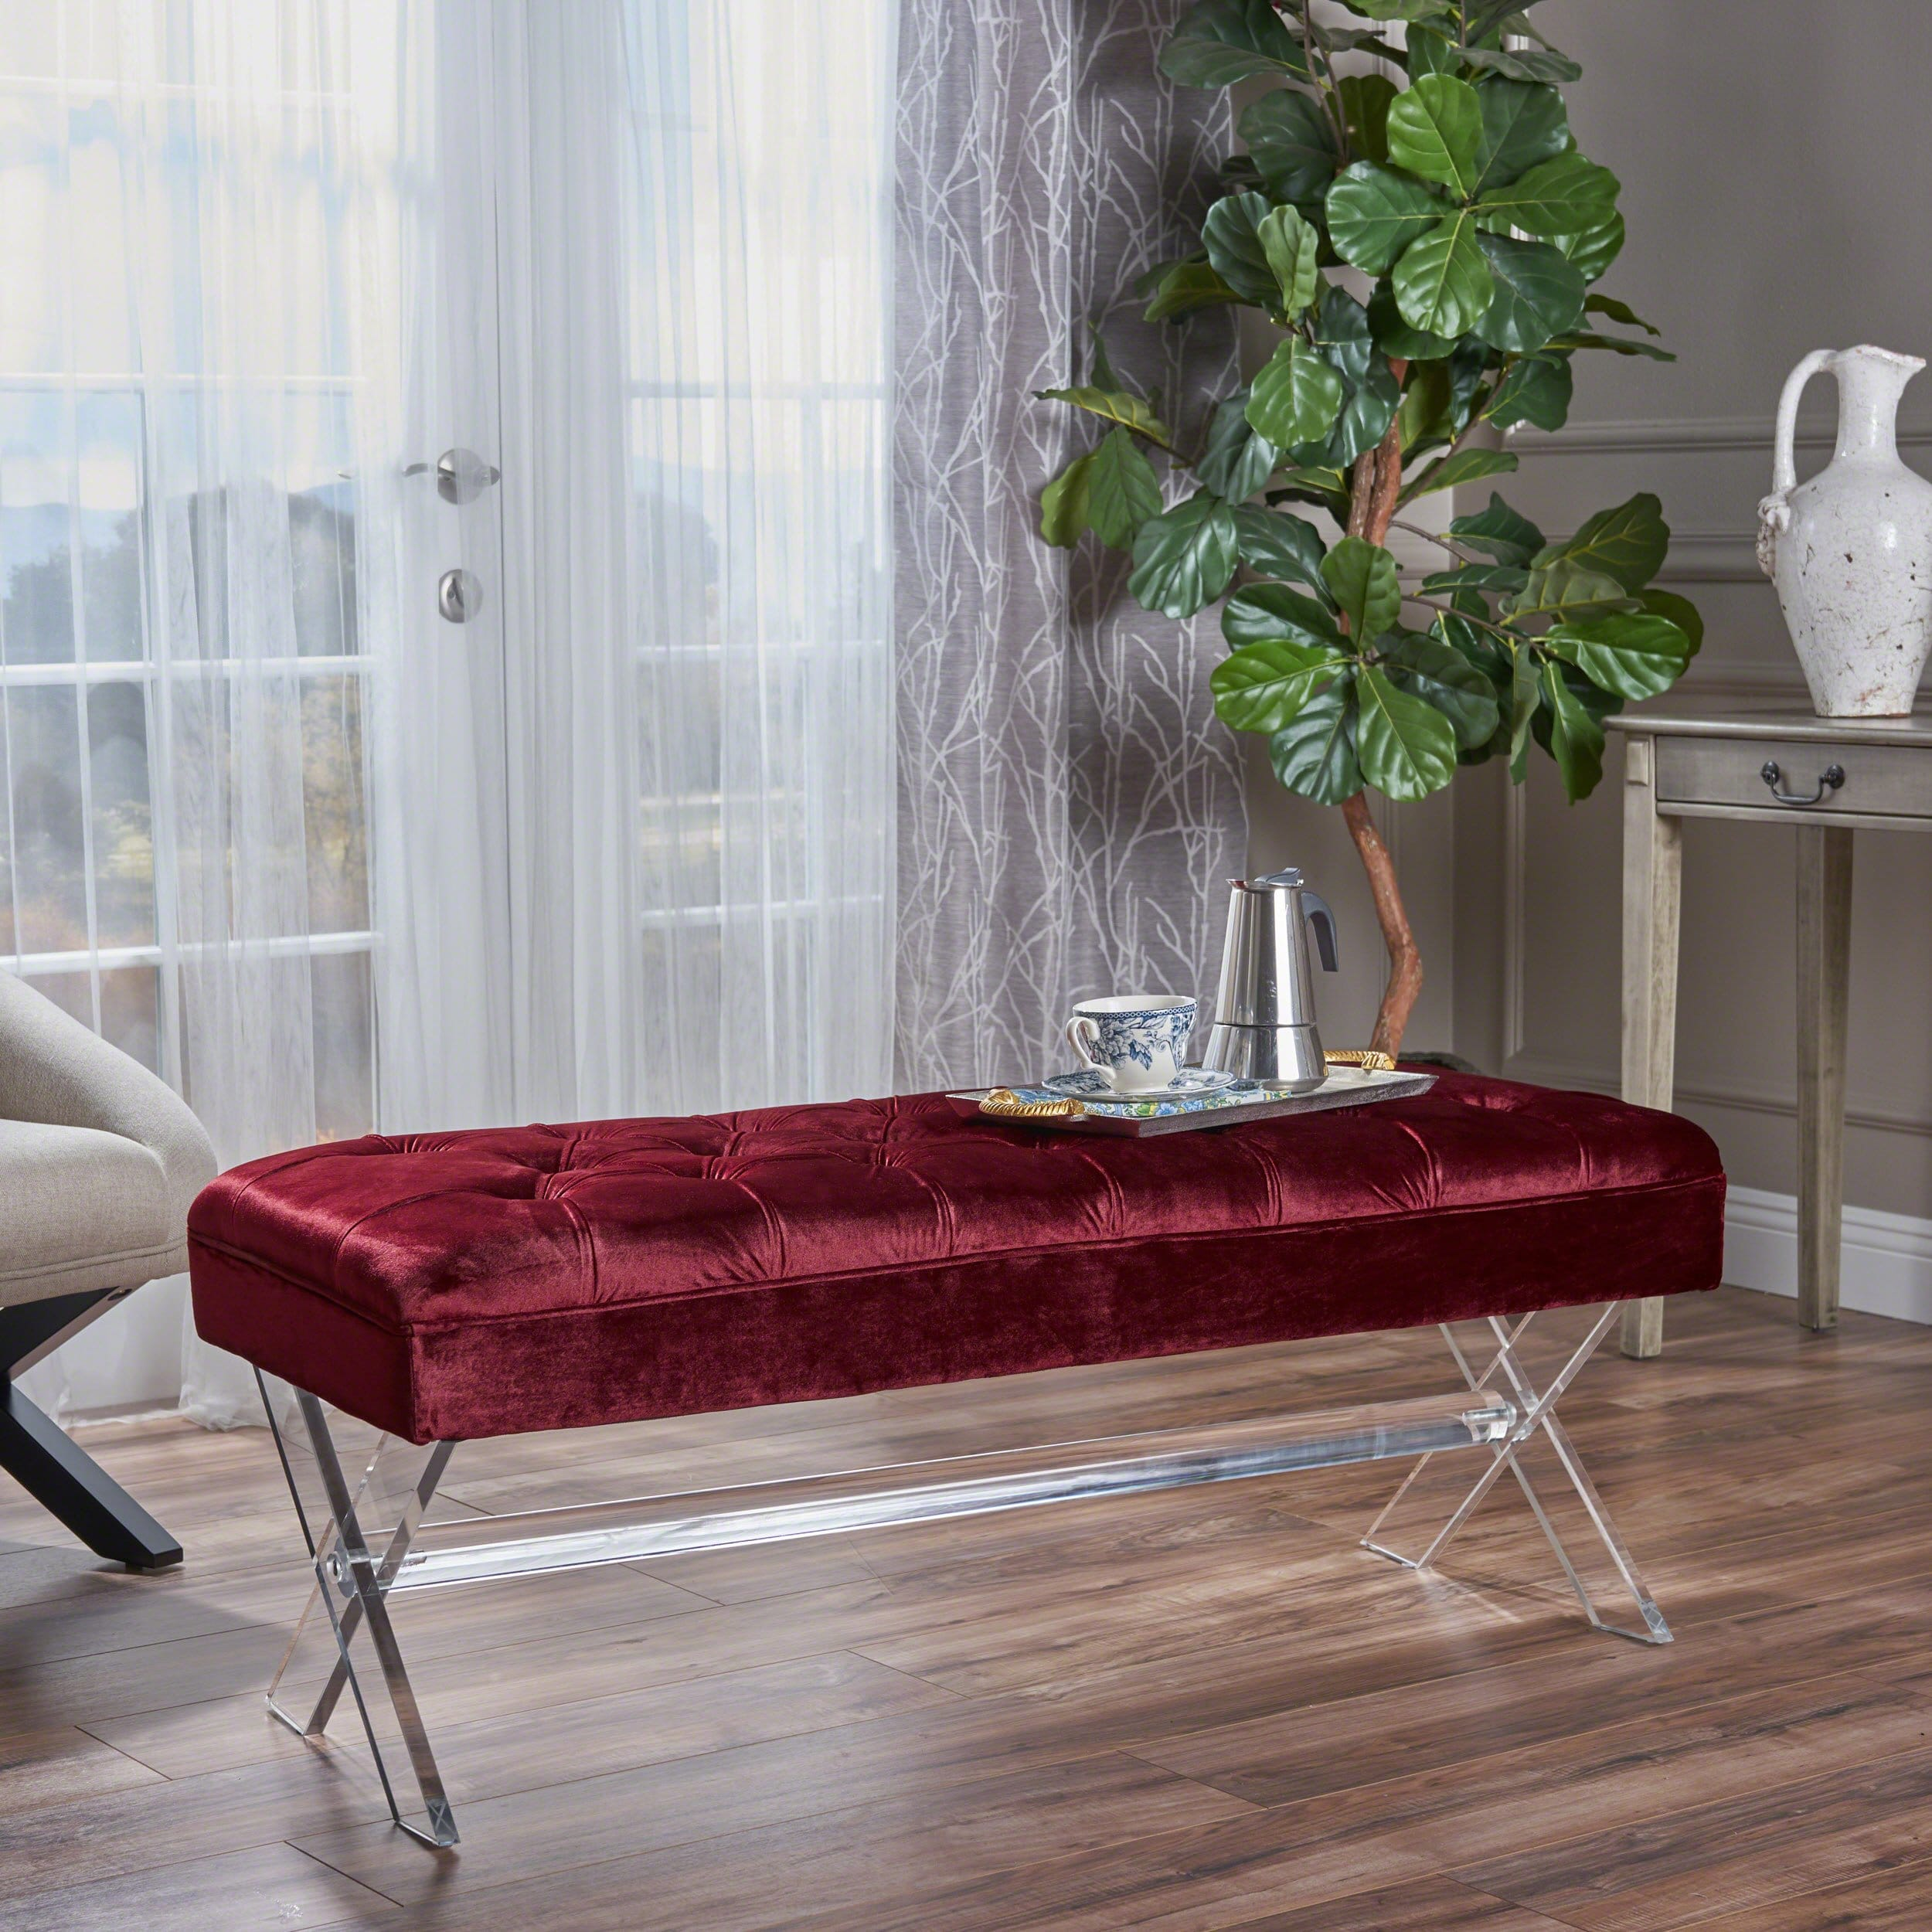 Christopher Knight Home Emeric Rectangle Tufted Velvet Ottoman Bench by